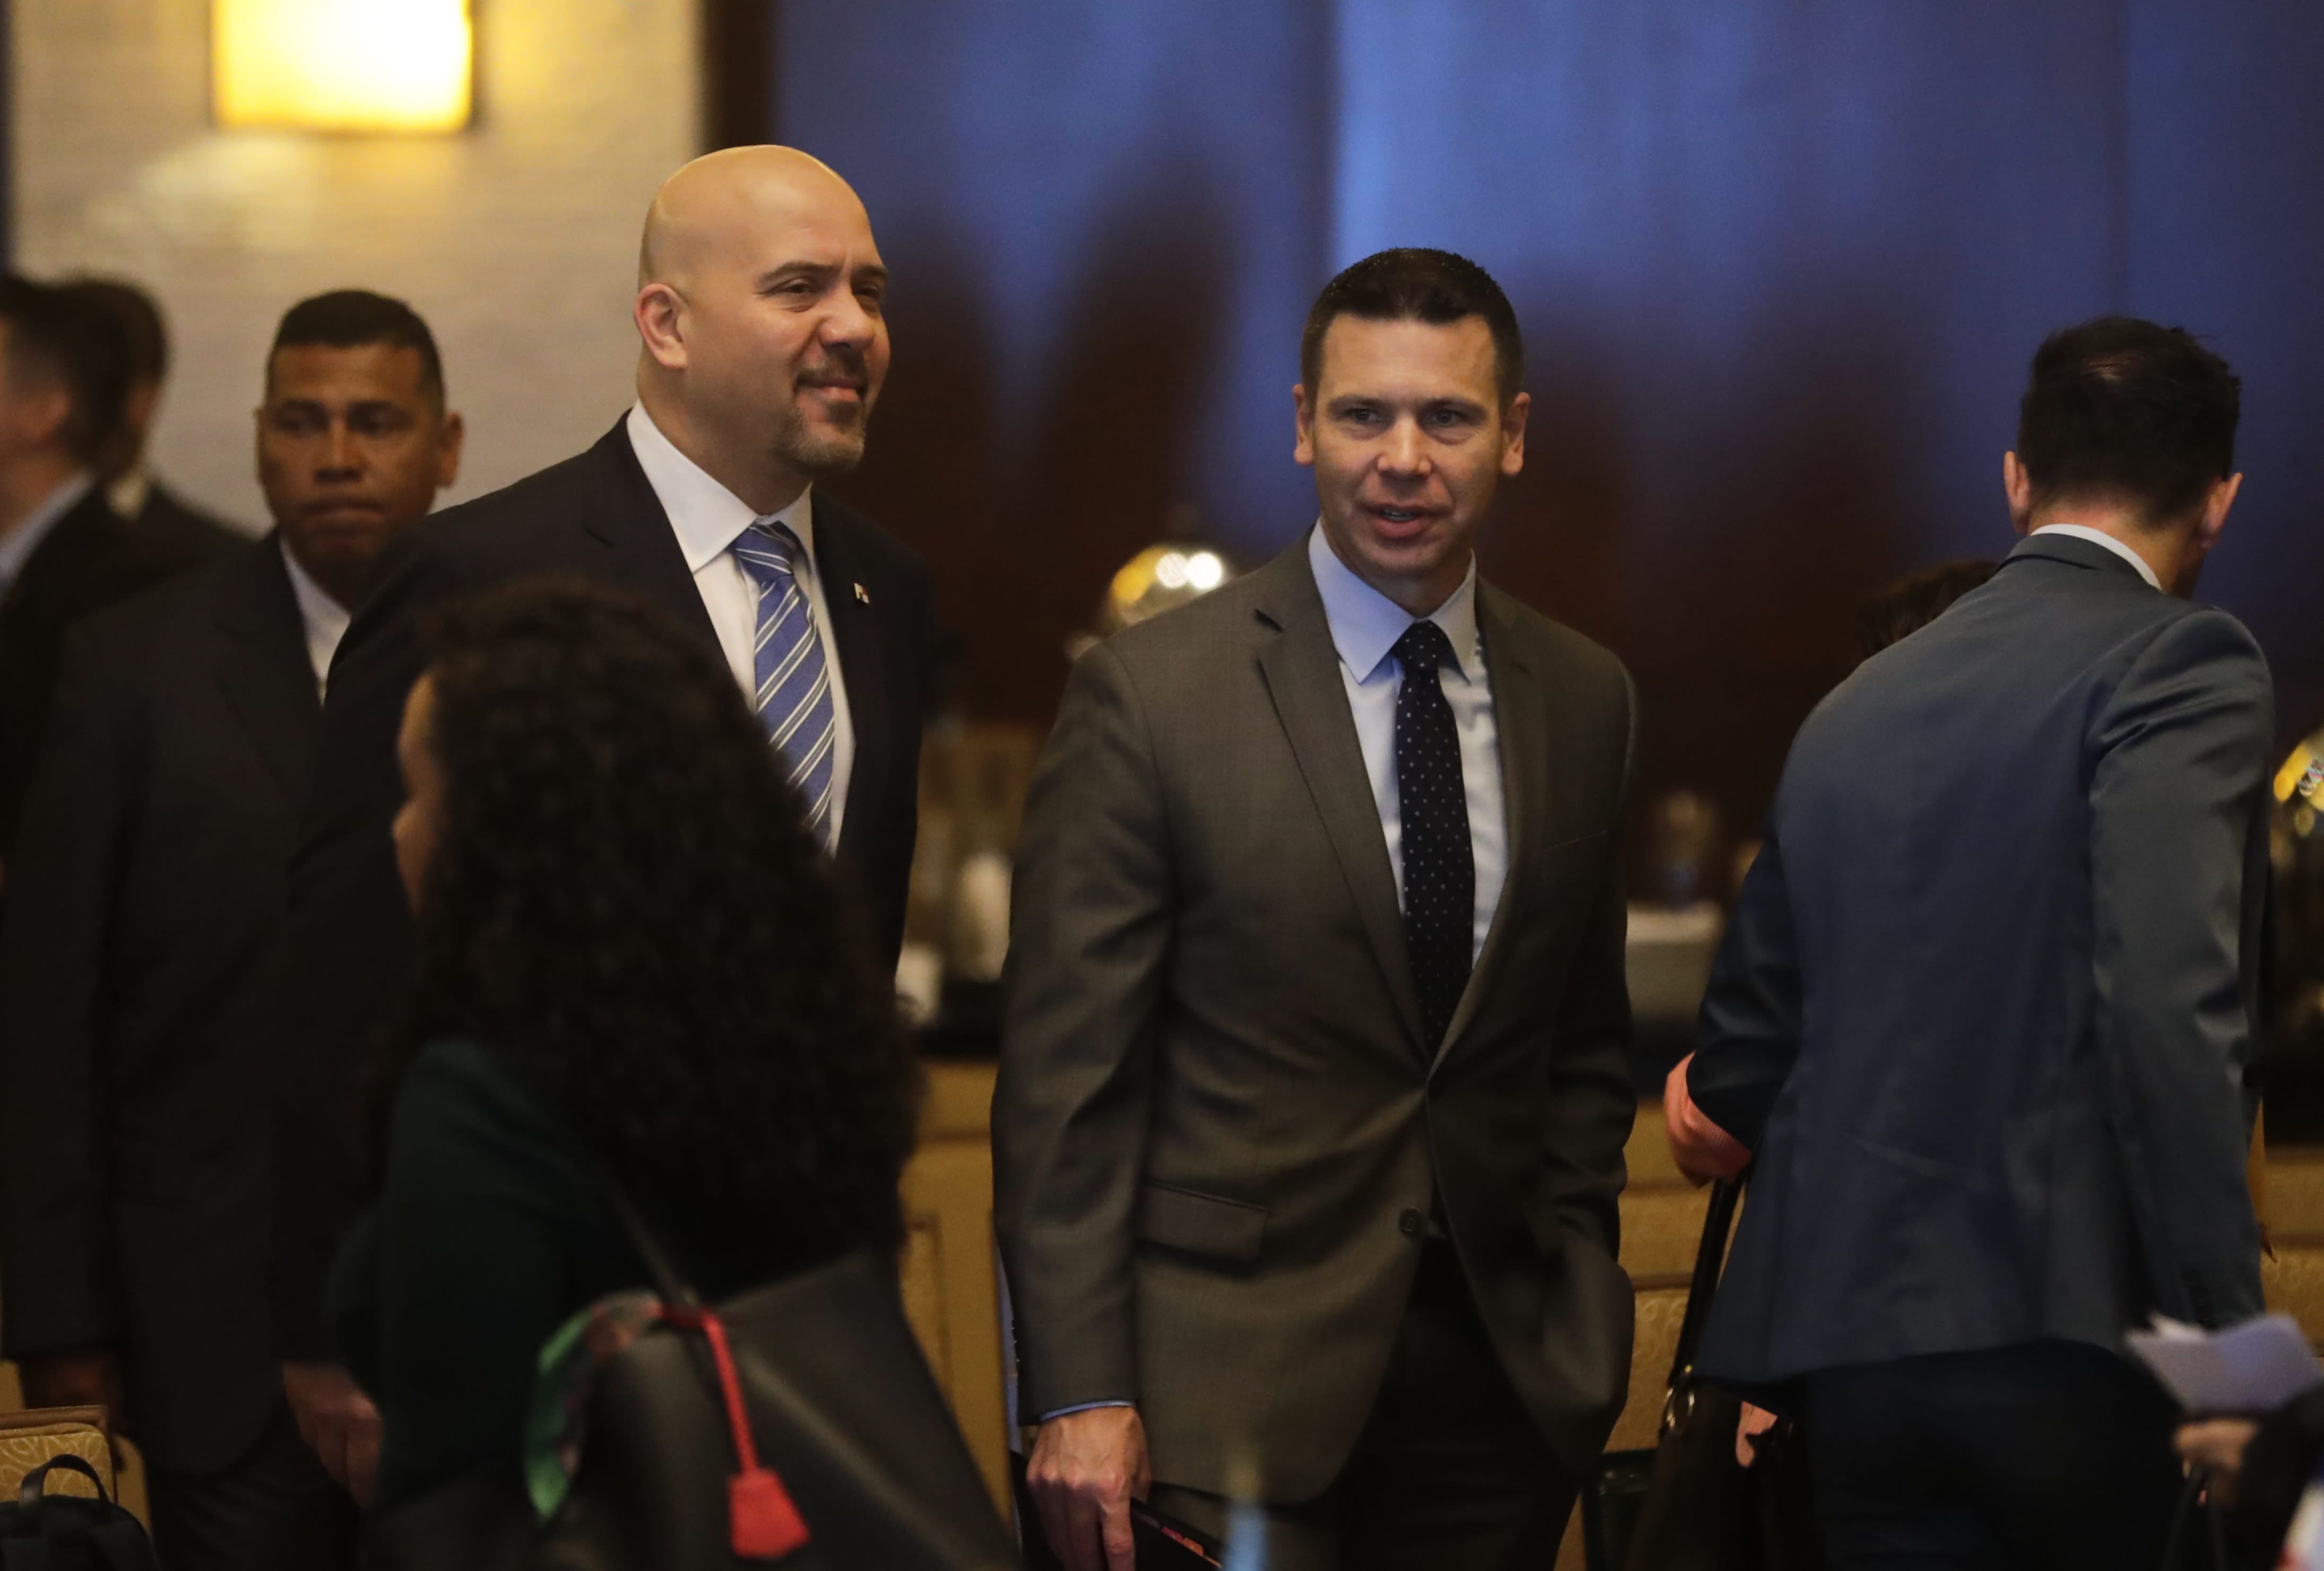 Acting U.S. Homeland Security Secretary Kevin McAleenan, center, and Rolando Mirones, left, Panama's Security Minister arrive to a meeting with Central American and Colombia's security ministers in Panama City, Thursday, Aug. 22, 2019. McAleenan is in Panama to discuss drug trafficking and migrant smuggling, though he says he isn't seeking any specific agreement during the visit. (AP Photo/Arnulfo Franco)